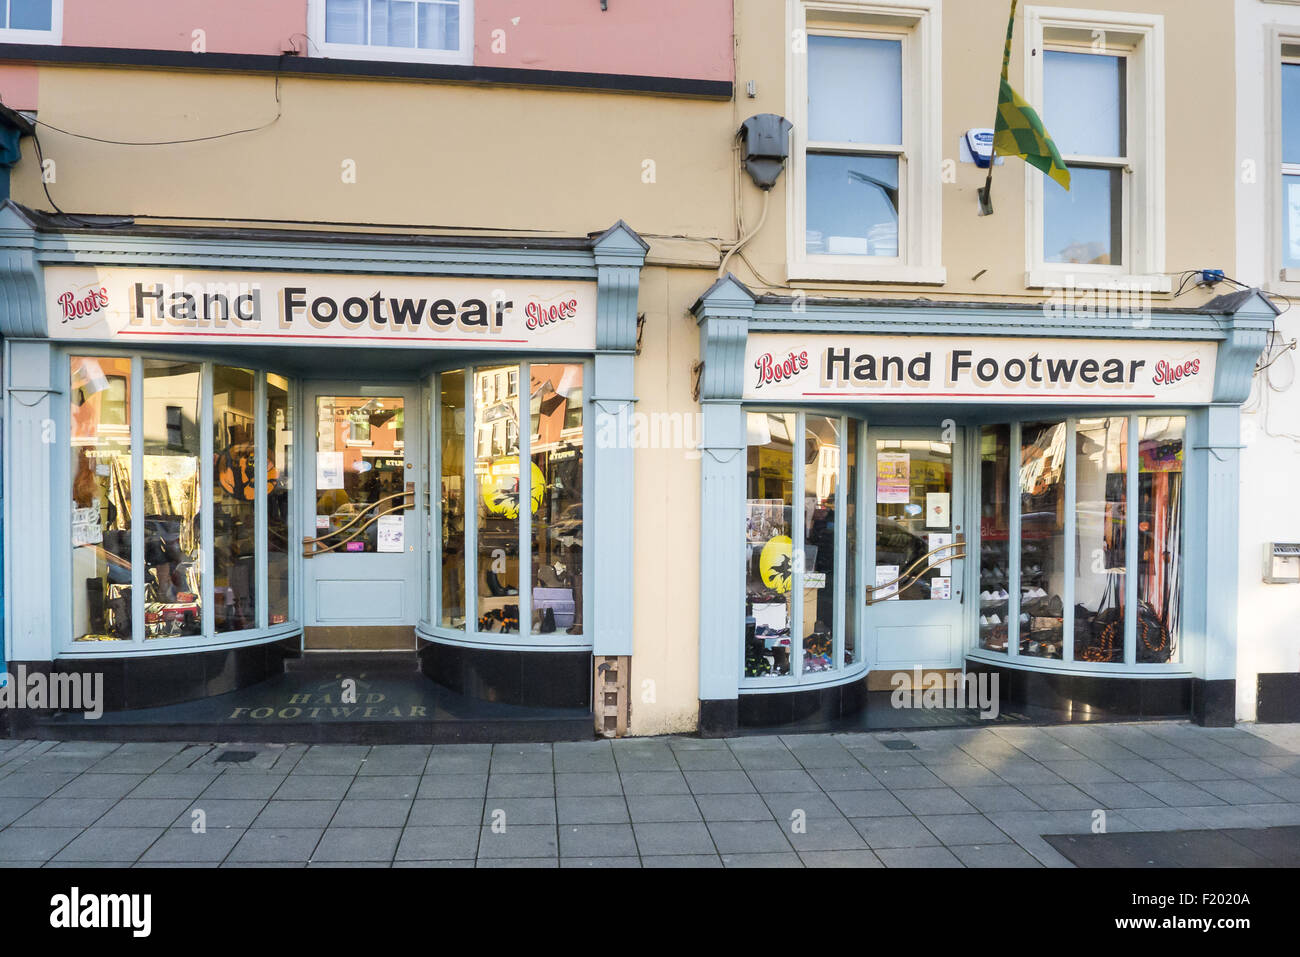 Carrickmacross, County Monaghan, Ireland. Old-fashioned Hand Footwear shop, selling boots and shoes, painted blue - Stock Image